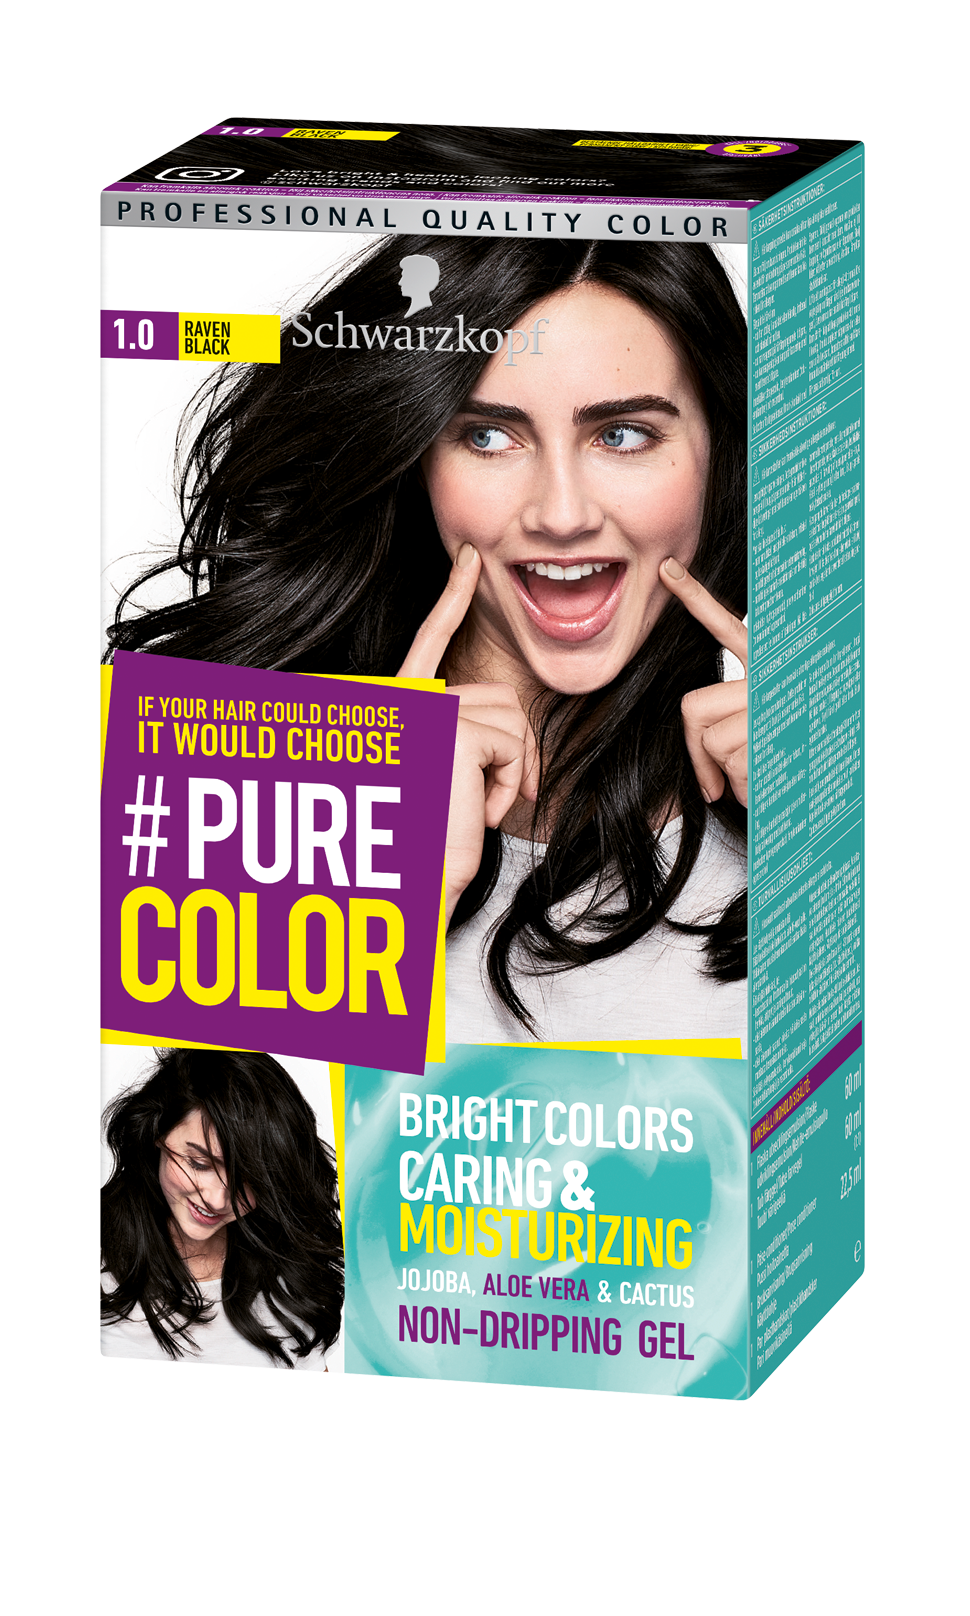 Pure-color-1-0-raven-black